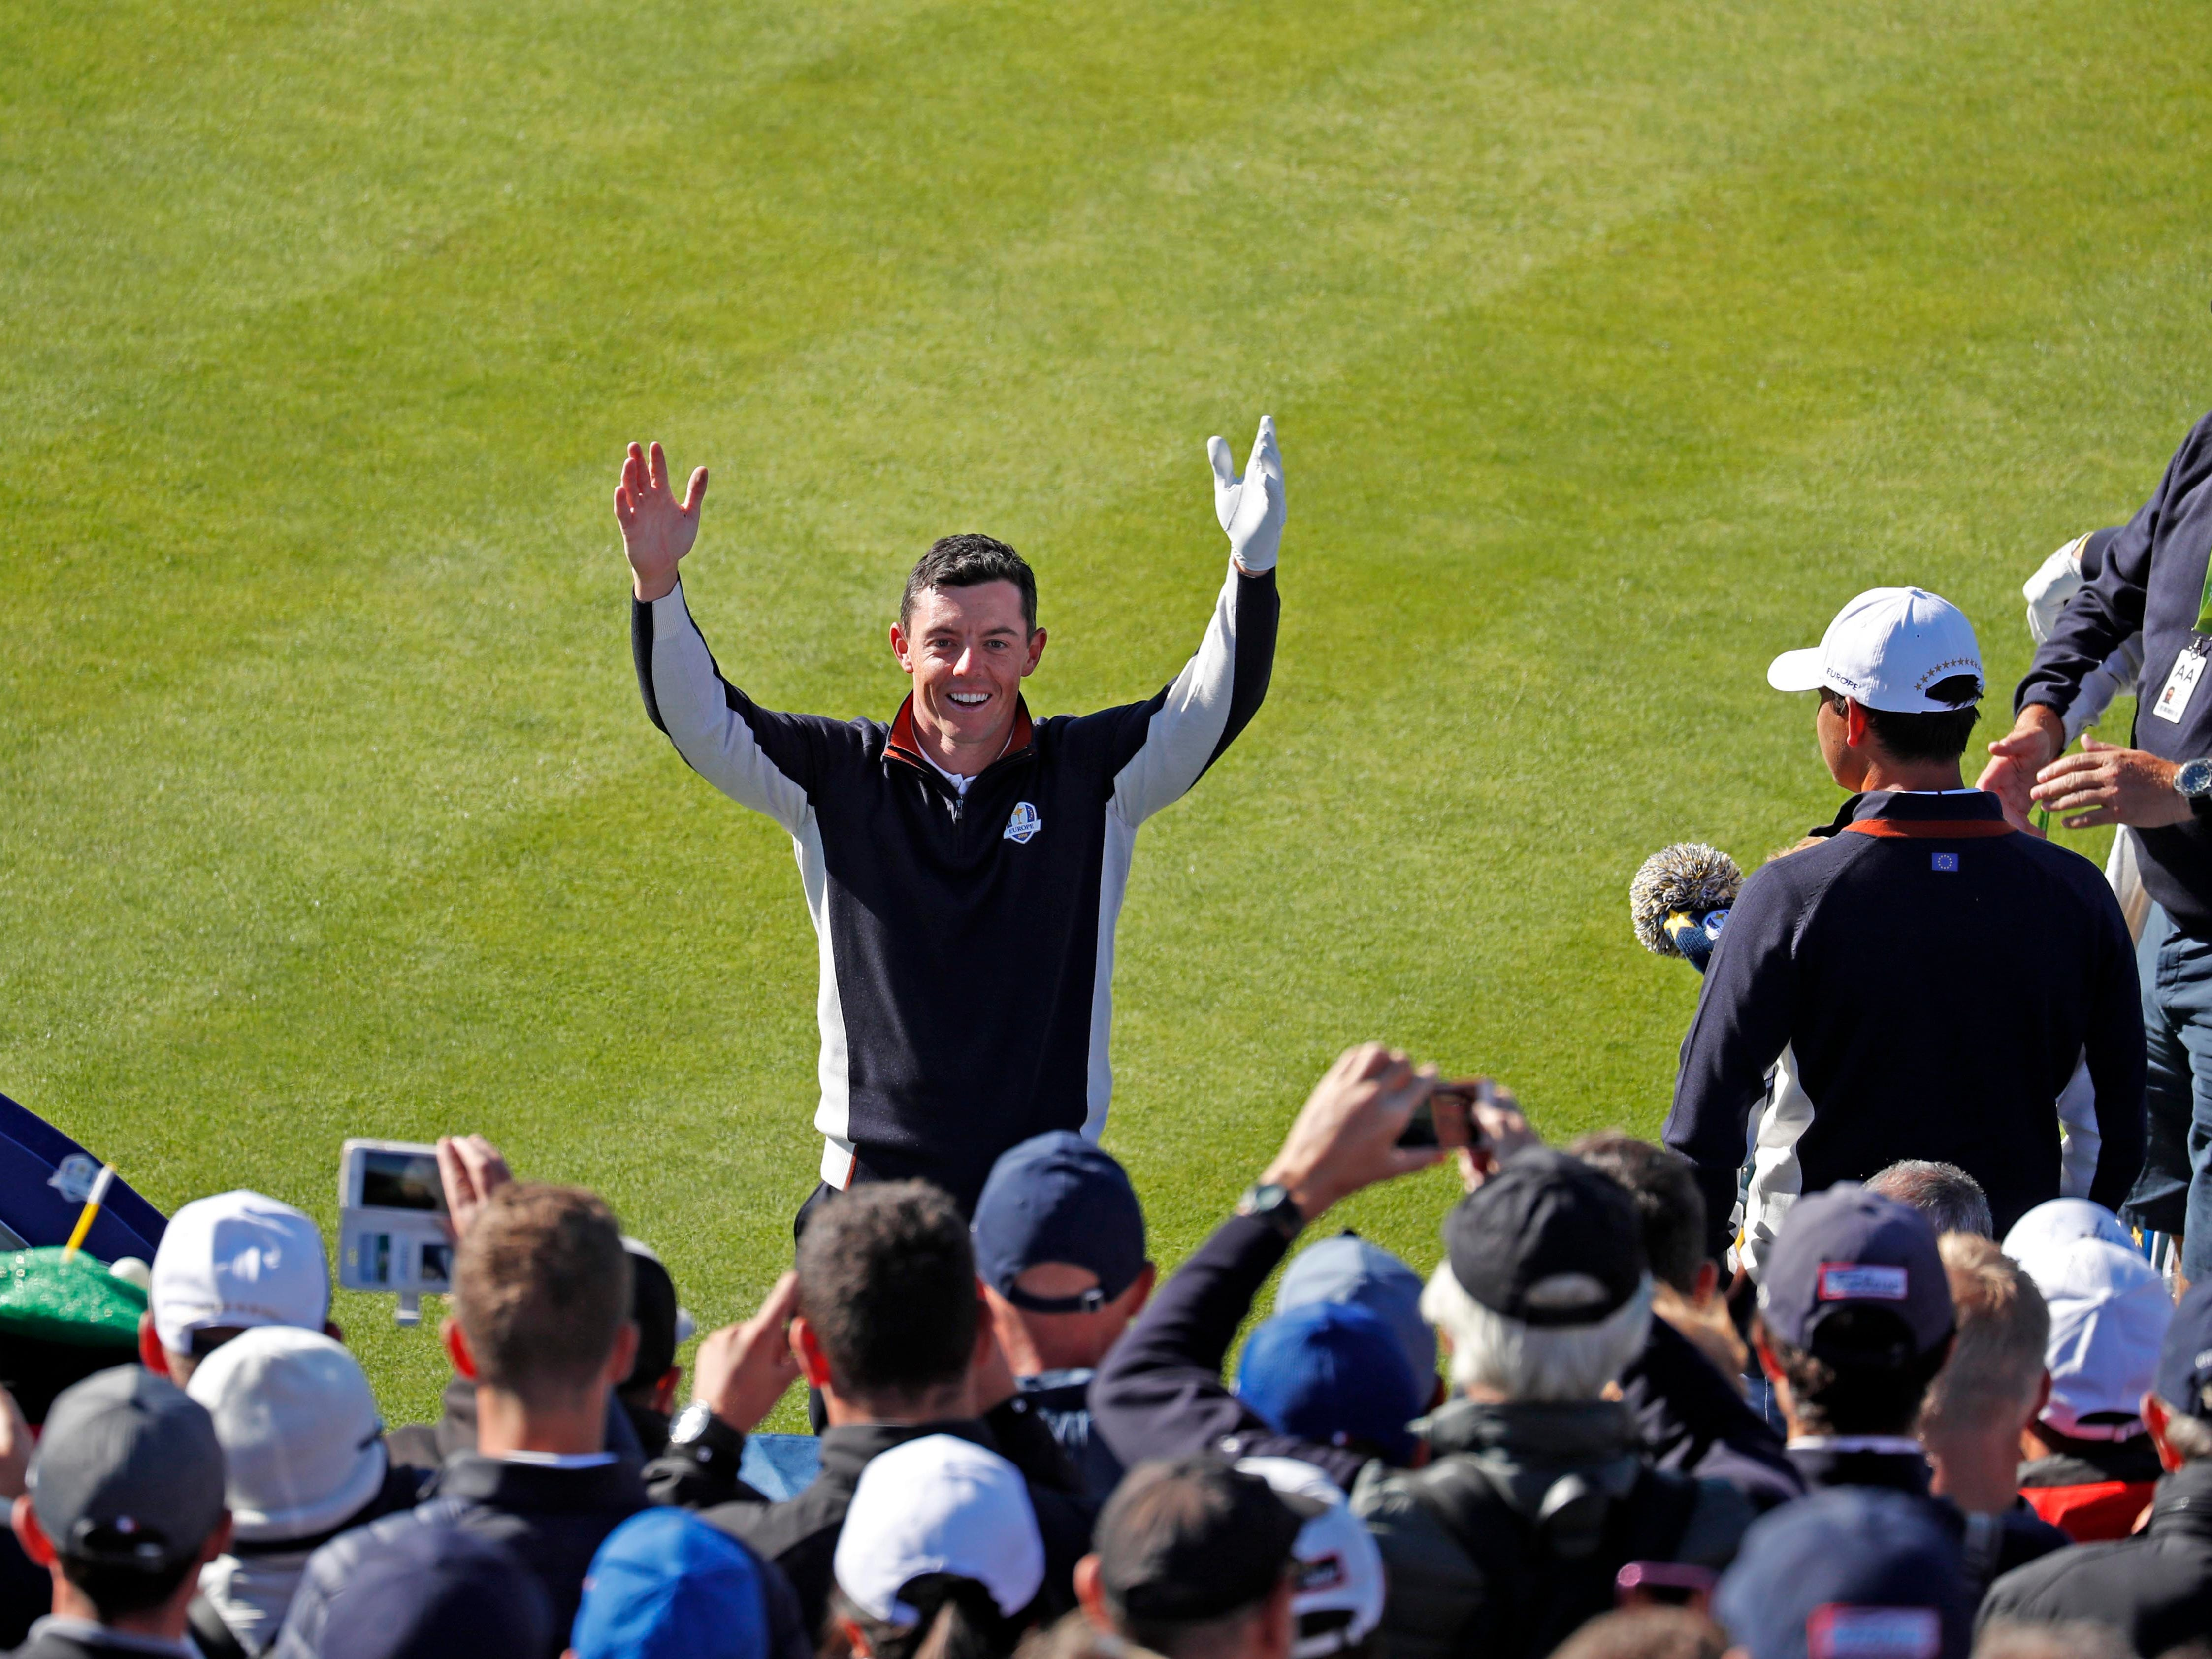 European golfer Rory McIlroy leads the European fans in a cheer on the first tee during a Ryder Cup practice round.